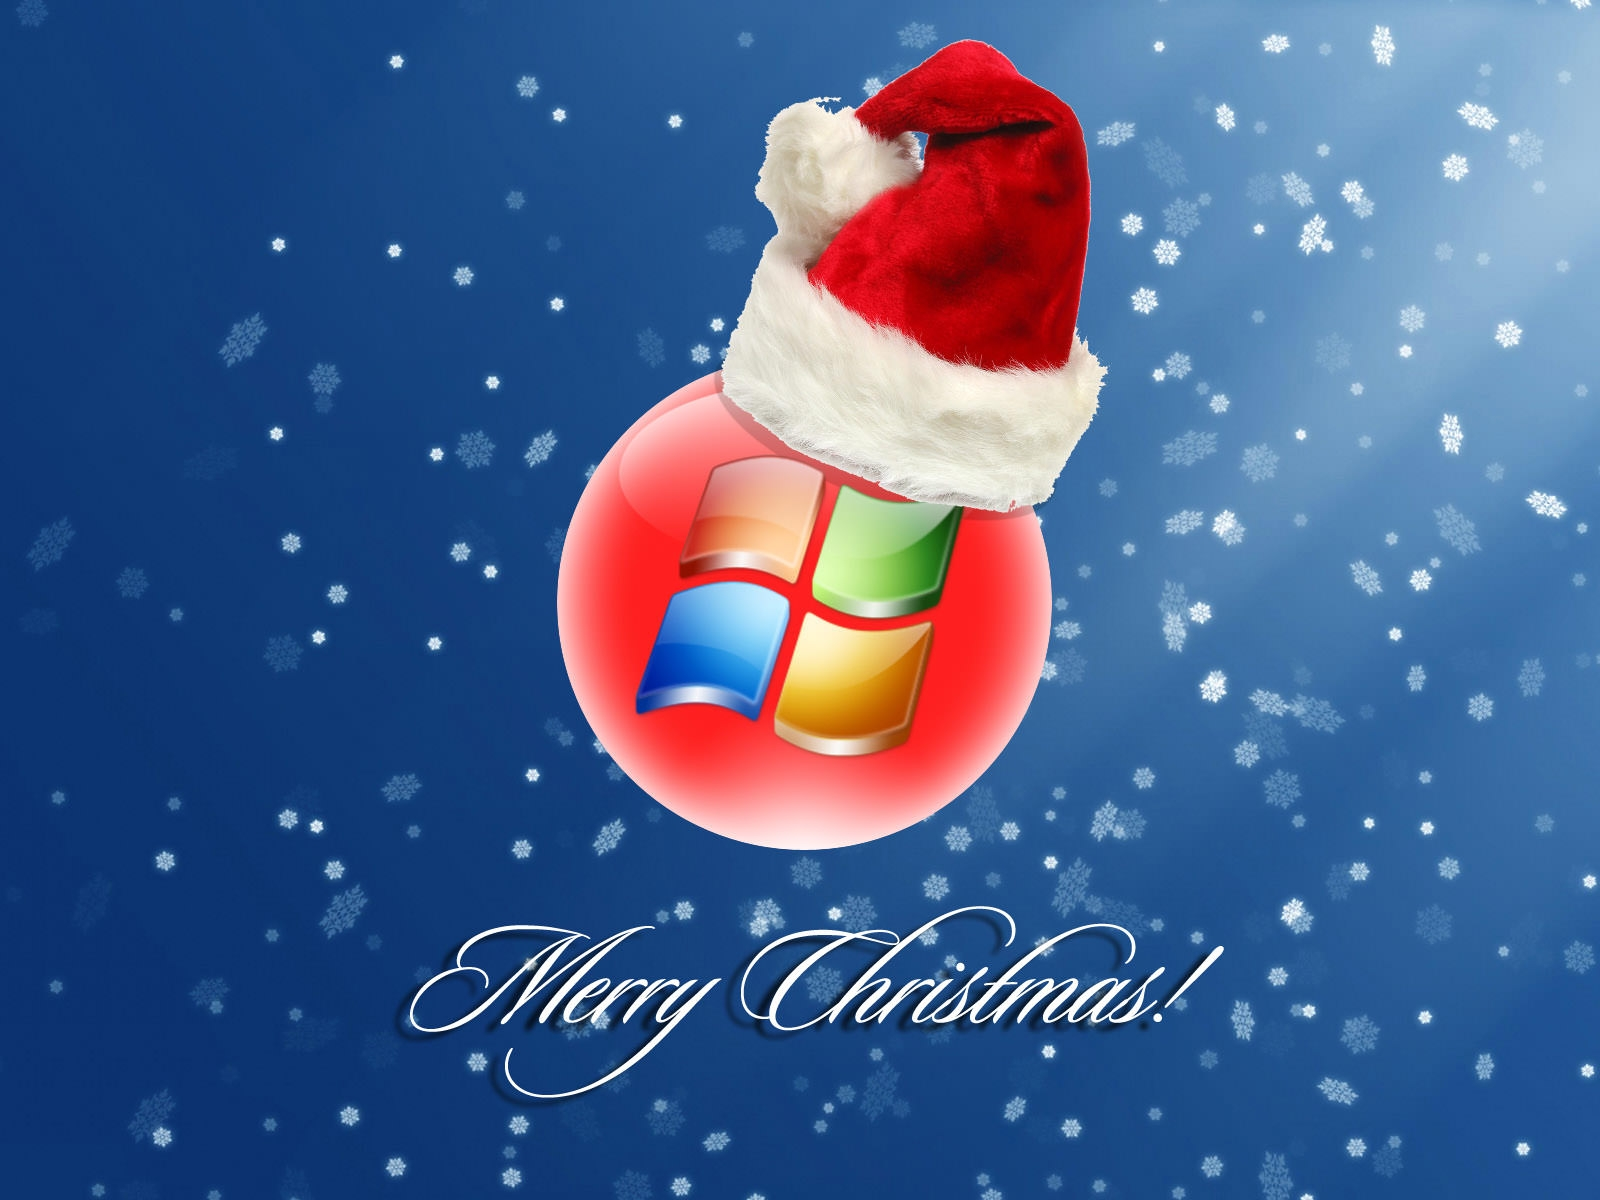 Top 24 Best Free Hd Christmas Wallpapers: 20 Beautiful HD Christmas Desktop Wallpapers